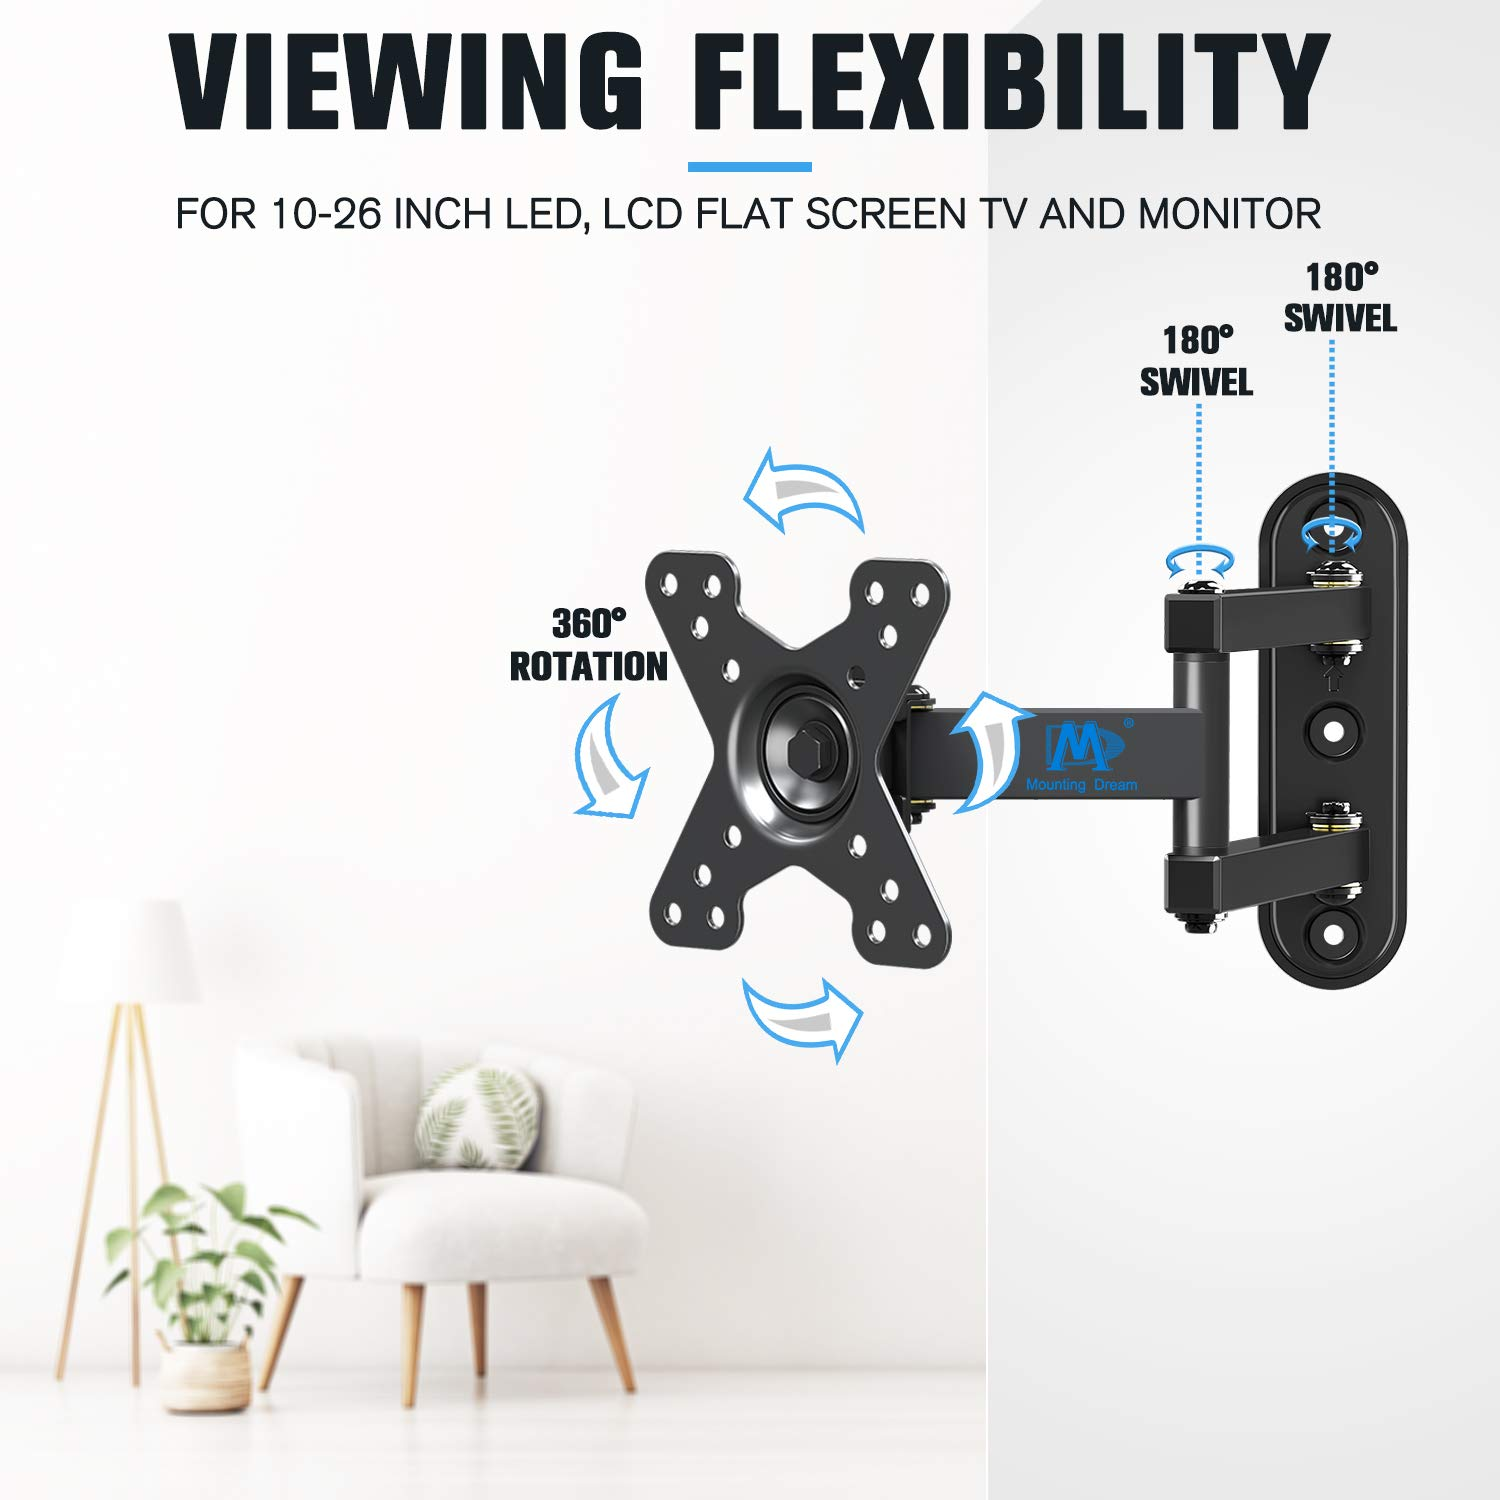 Mounting Dream Full Motion Monitor Wall Mount TV Bracket for 10-26 Inch LED, LCD Flat Screen TV and Monitor, TV Mount with Swivel Articulating Arm, Monitor Mount Up to VESA 100x100mm and 33LBS MD2463